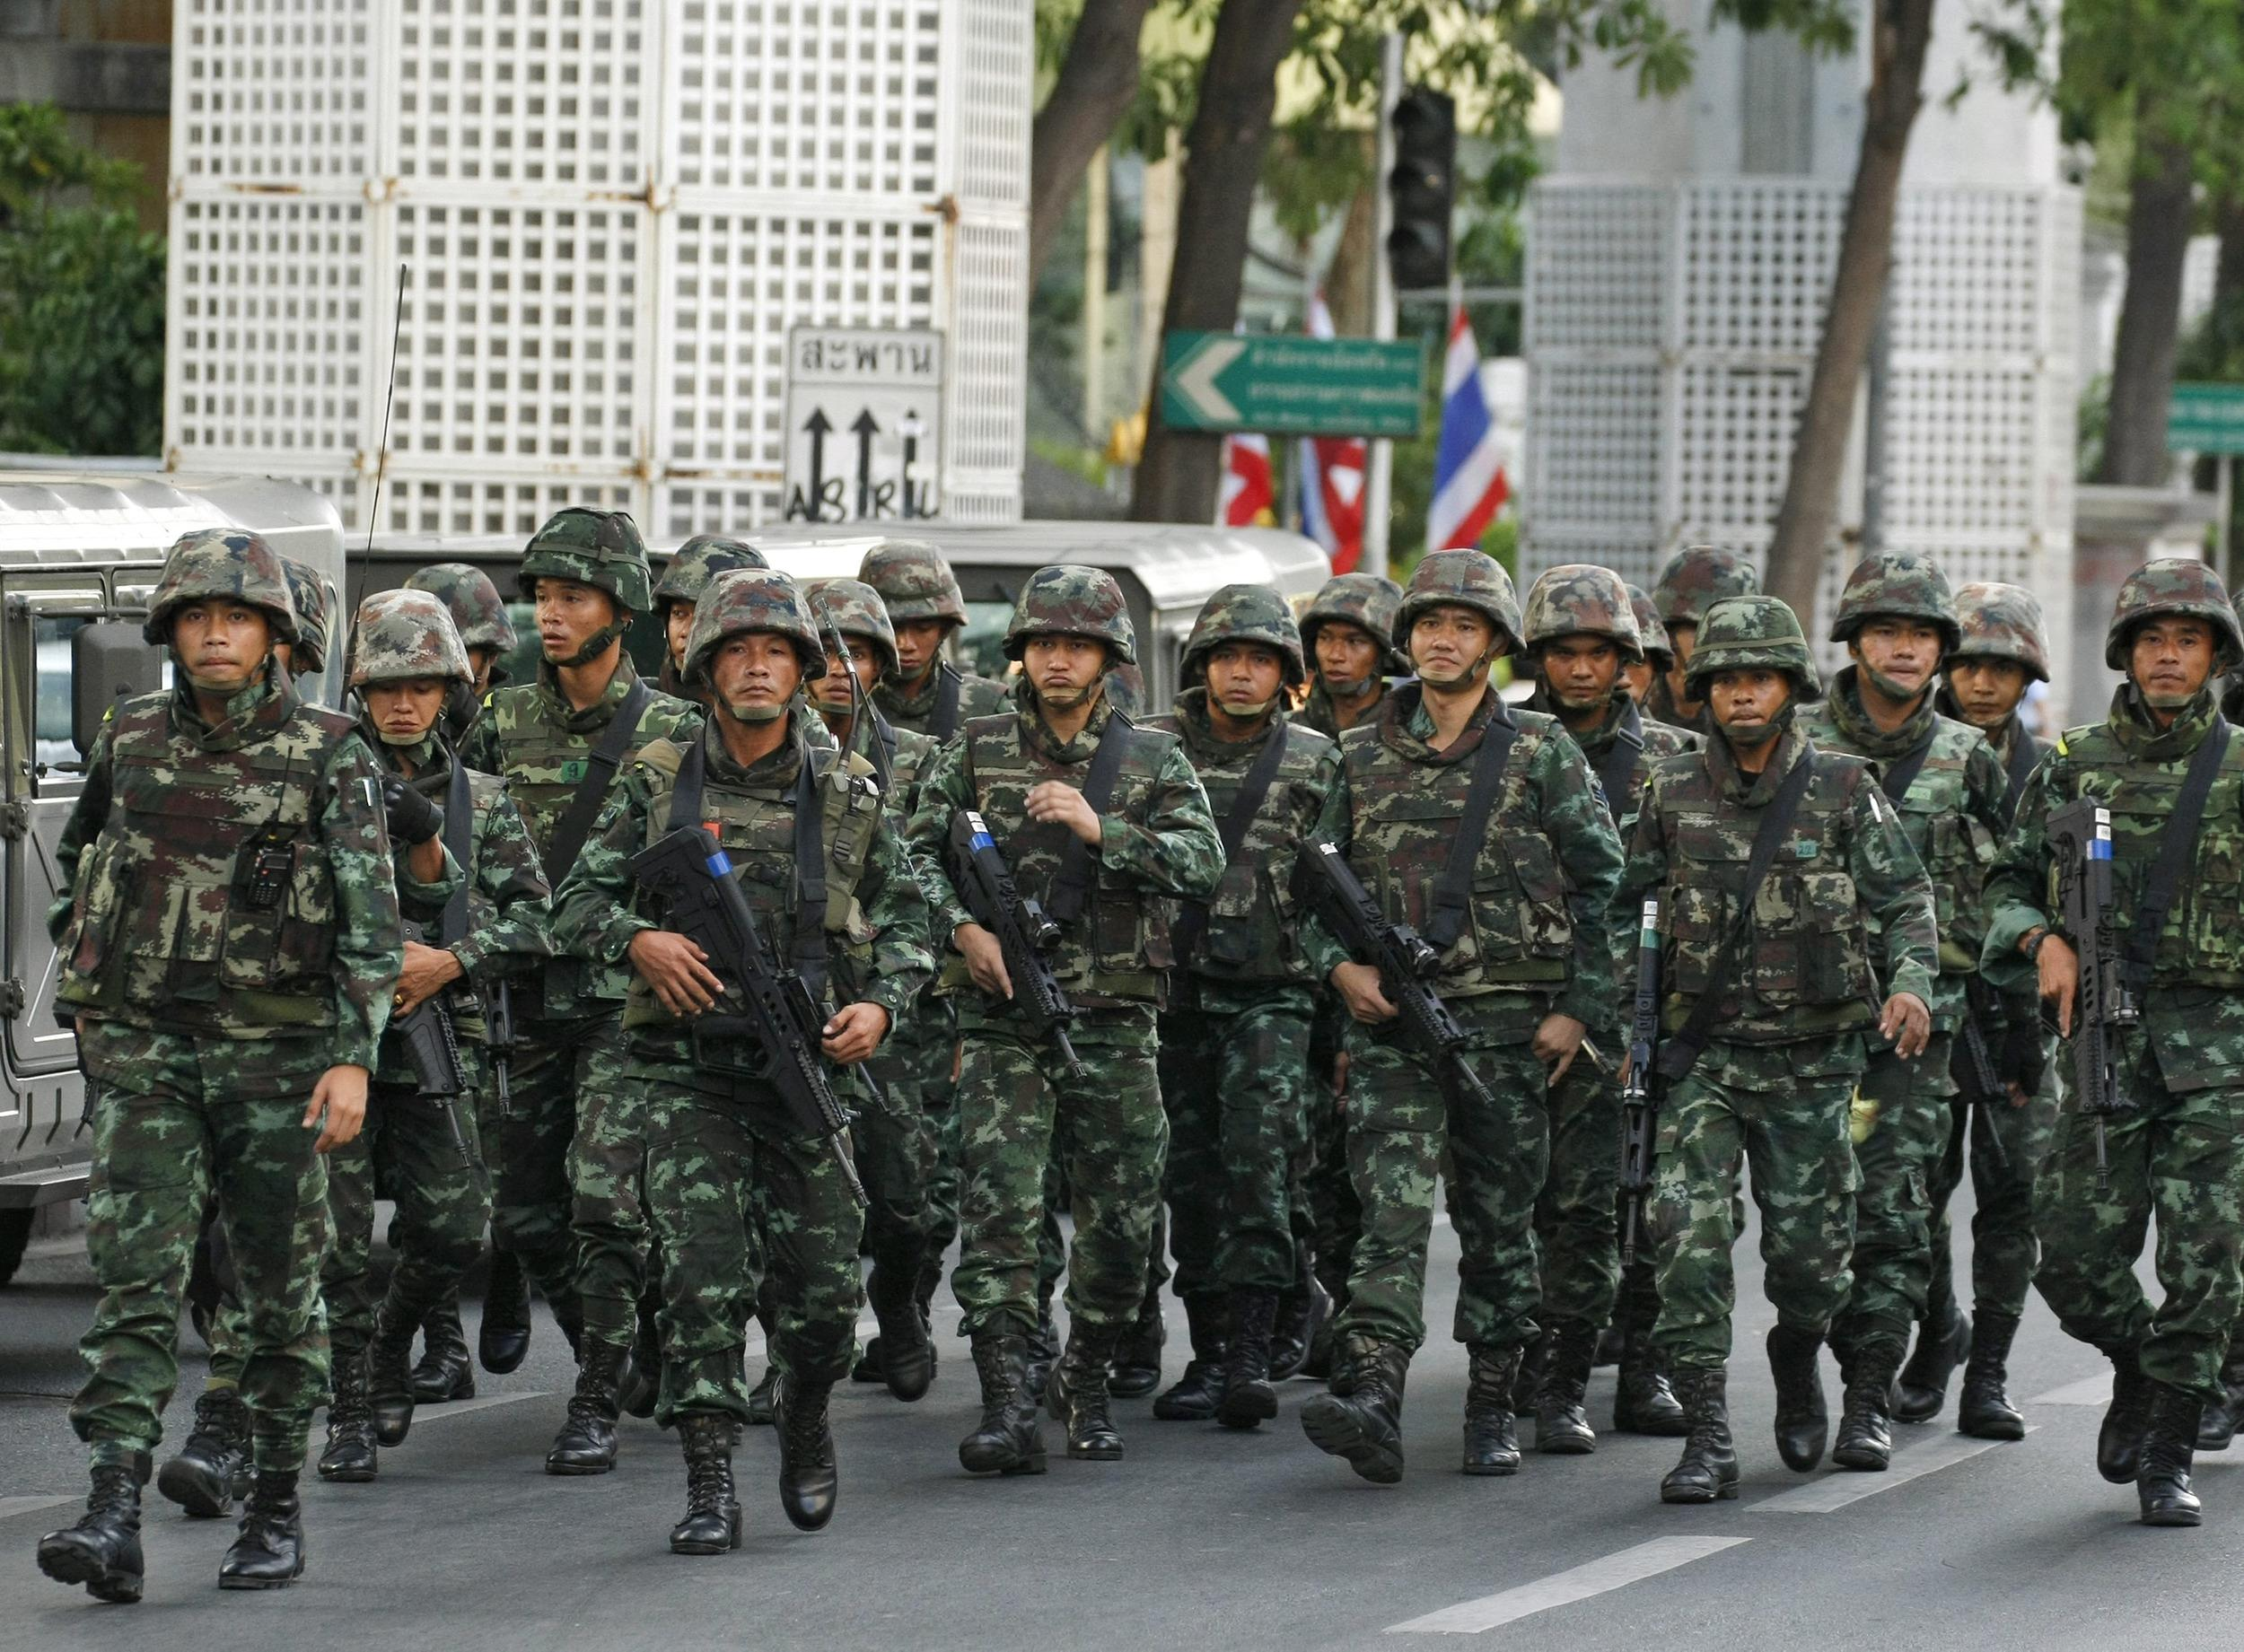 Armed Thai soldiers march in as hundreds of pro-democracy activists held a demonstration against the army coup near the Bangkok Art and Culture Center (BACC).